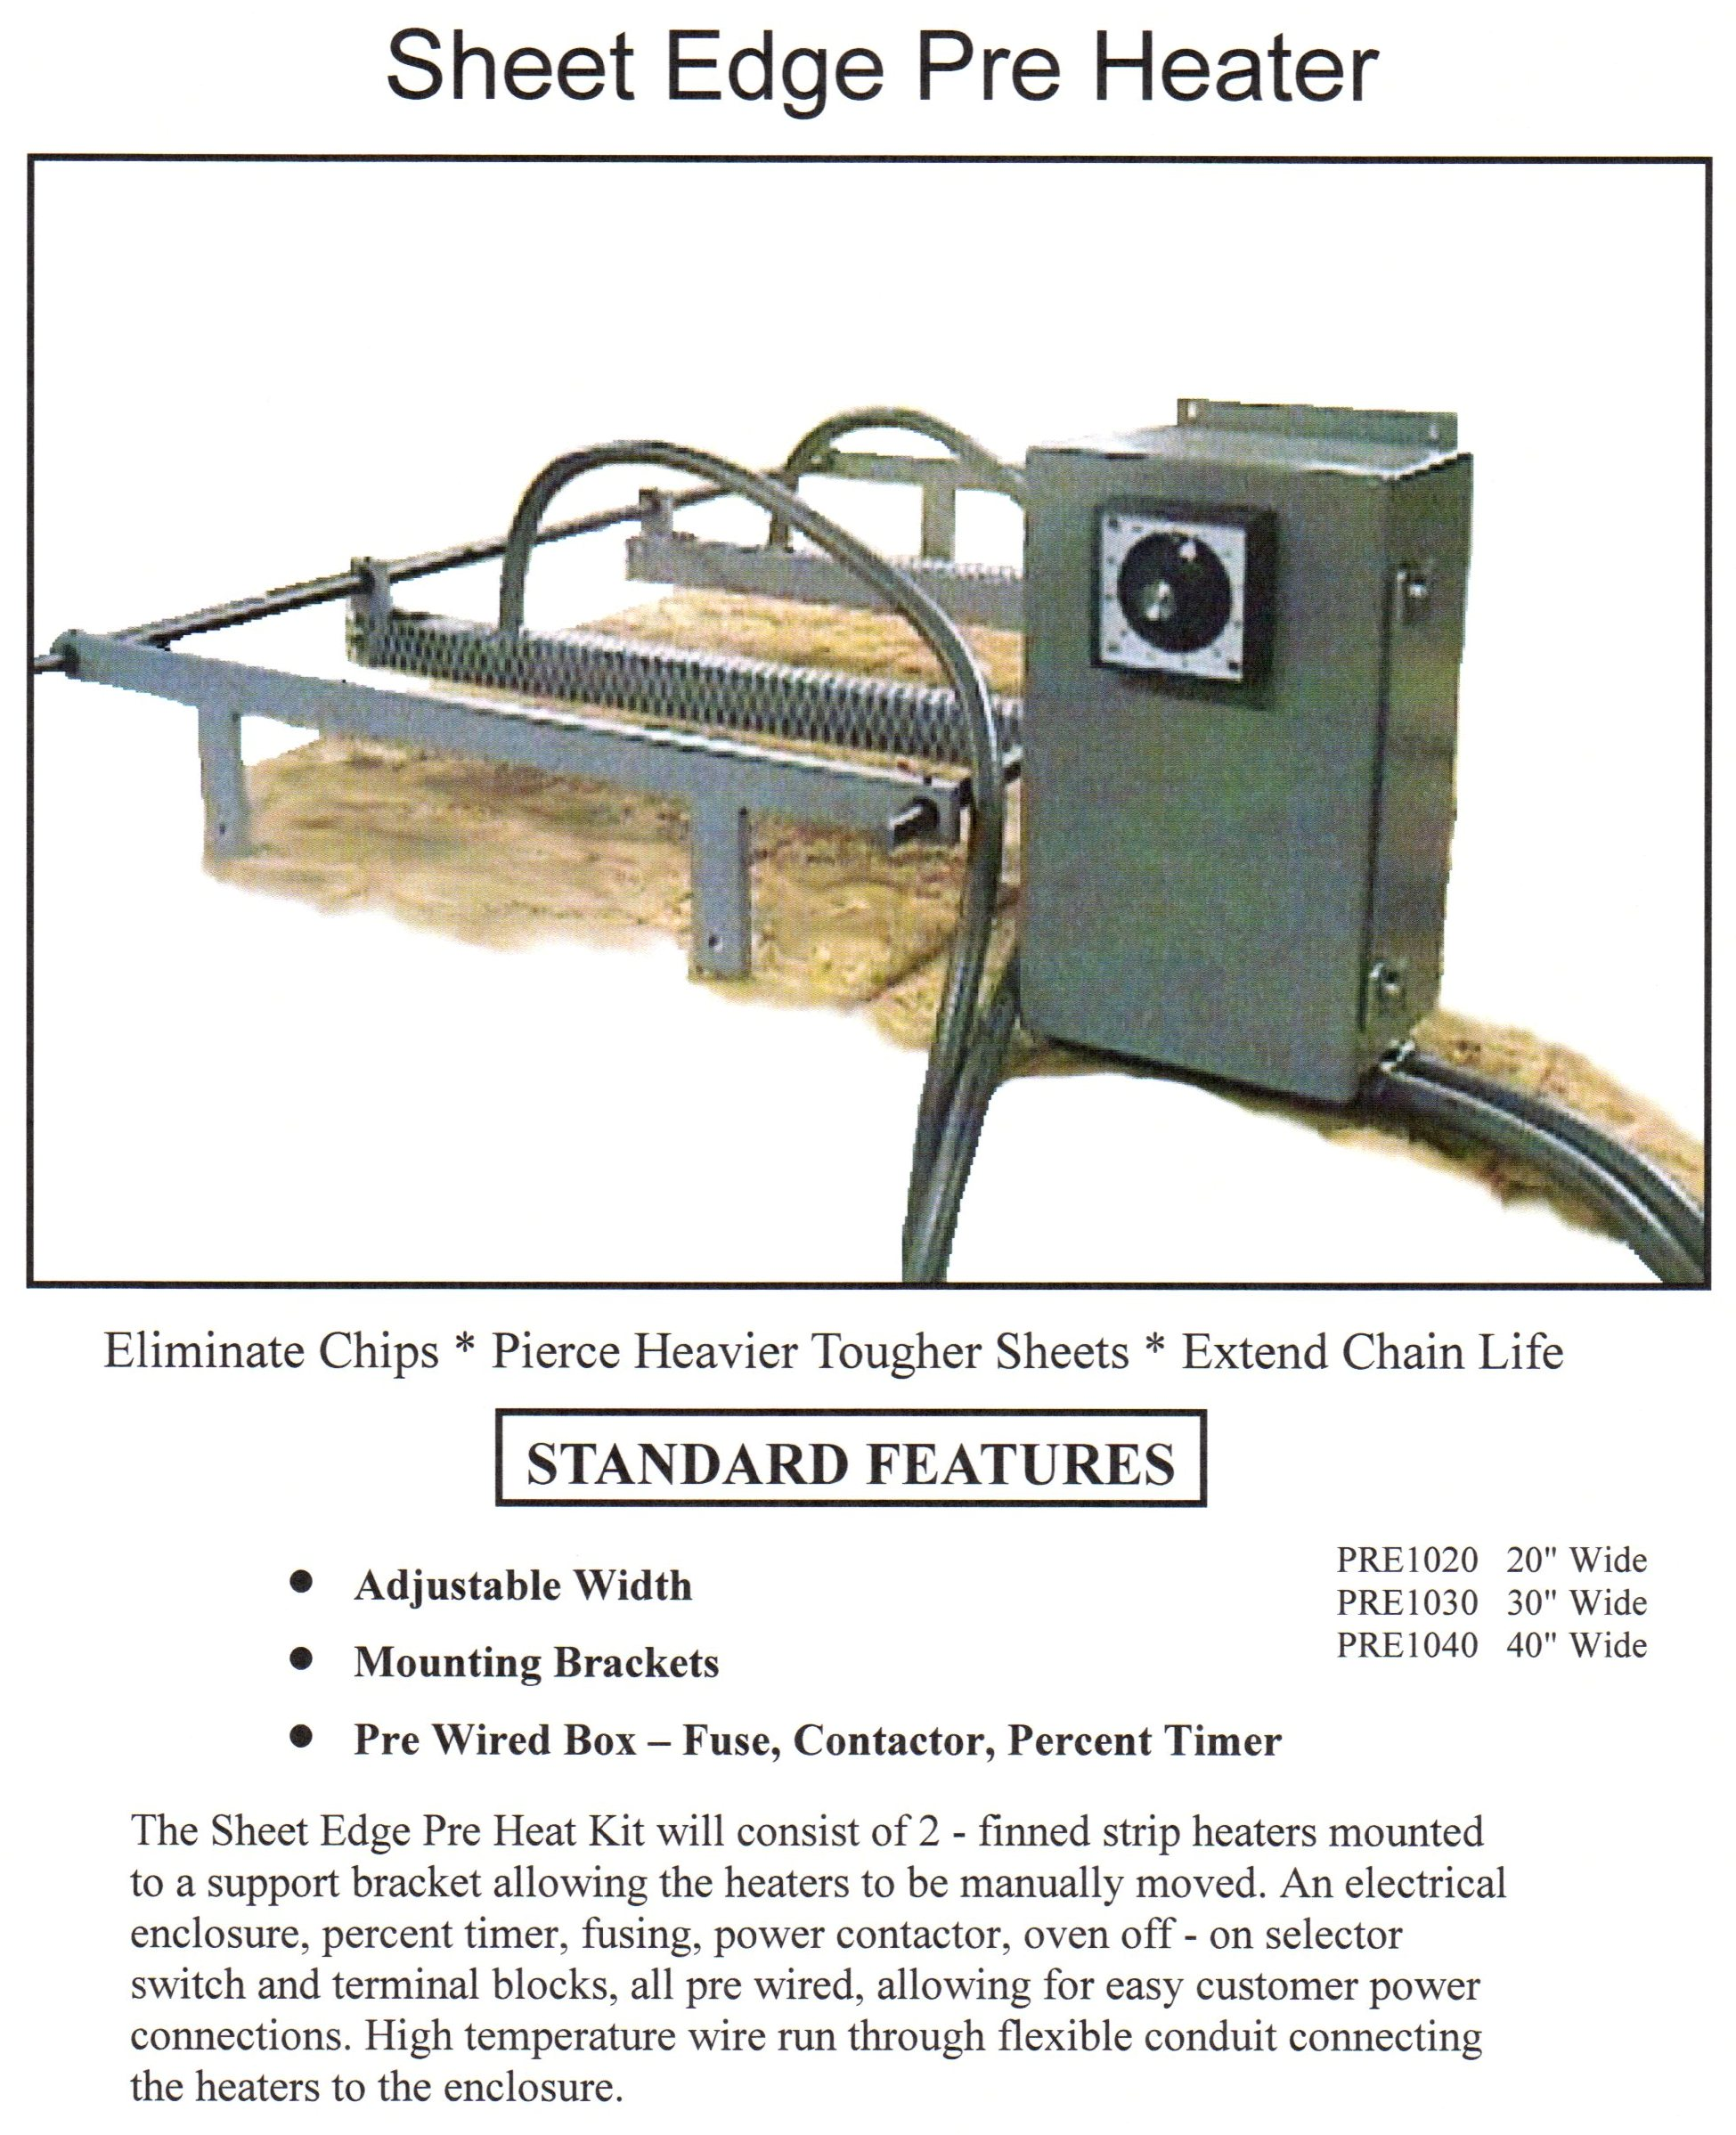 Sheet Edge Heater